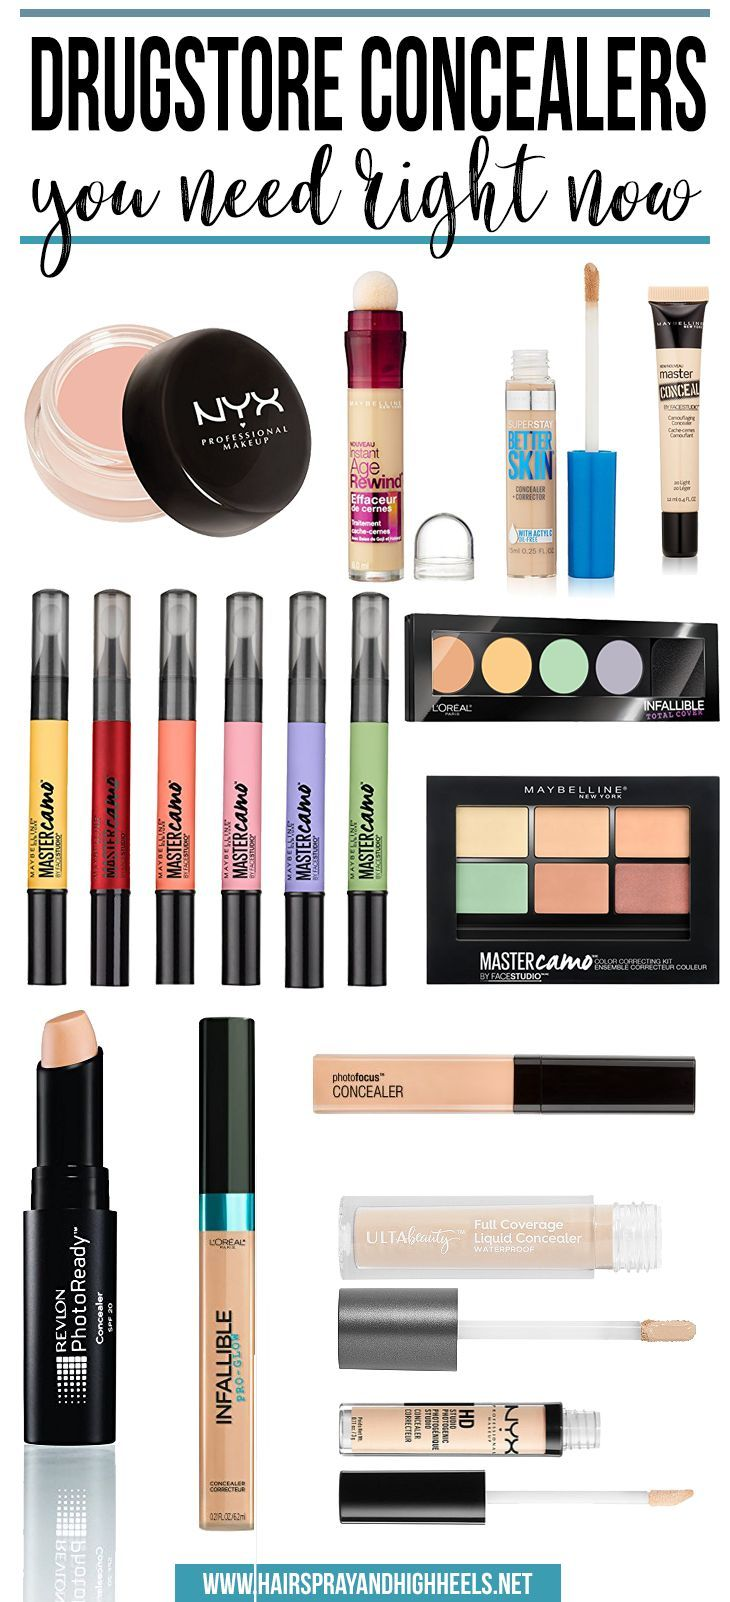 BOOKMARK THIS! This blogger shares the BEST drugstore concealers on the market!